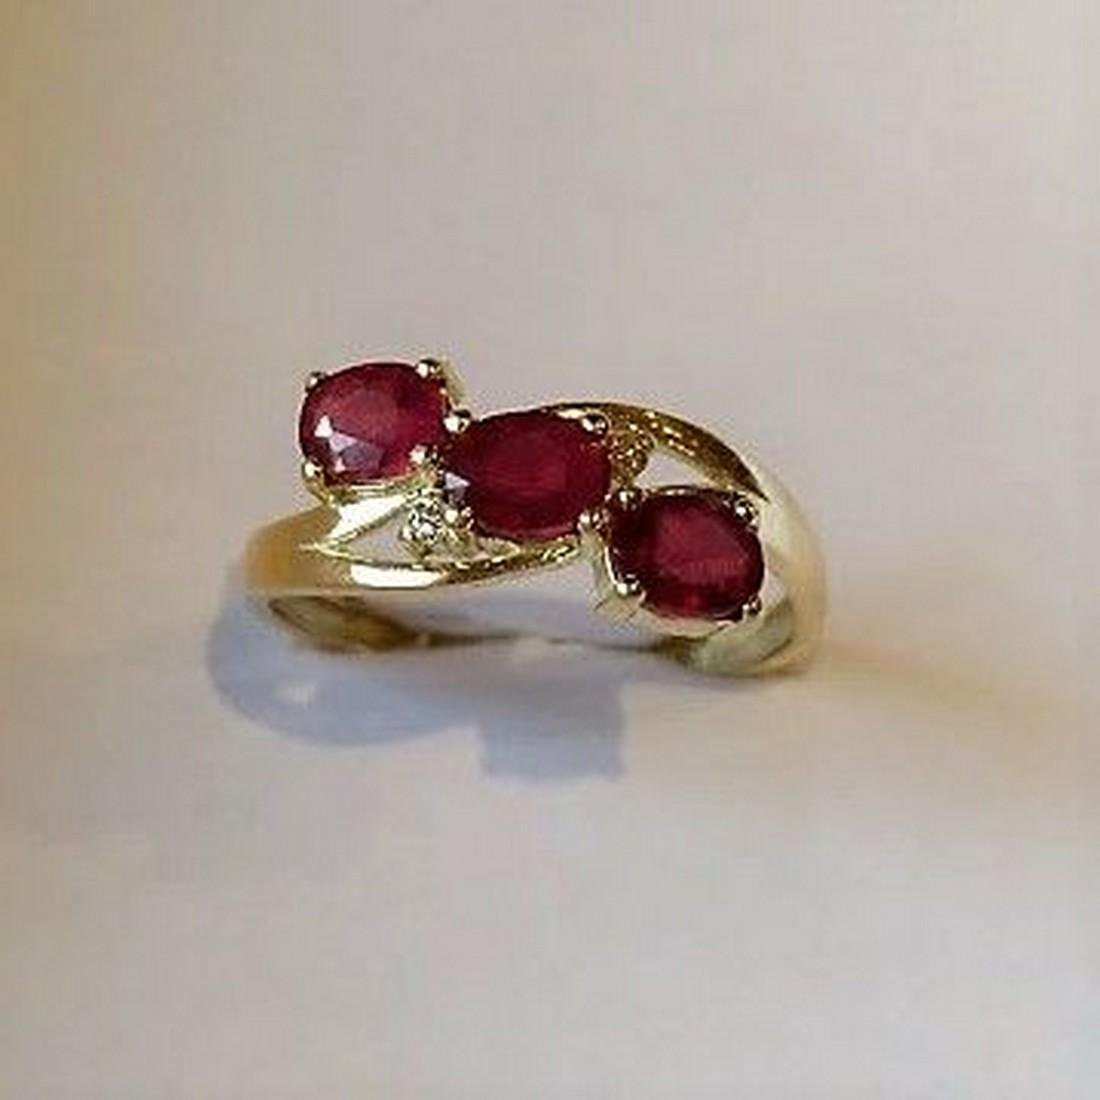 Ring New Ruby Trilogy with 2 Diamonds 14K Gold Made in - 6